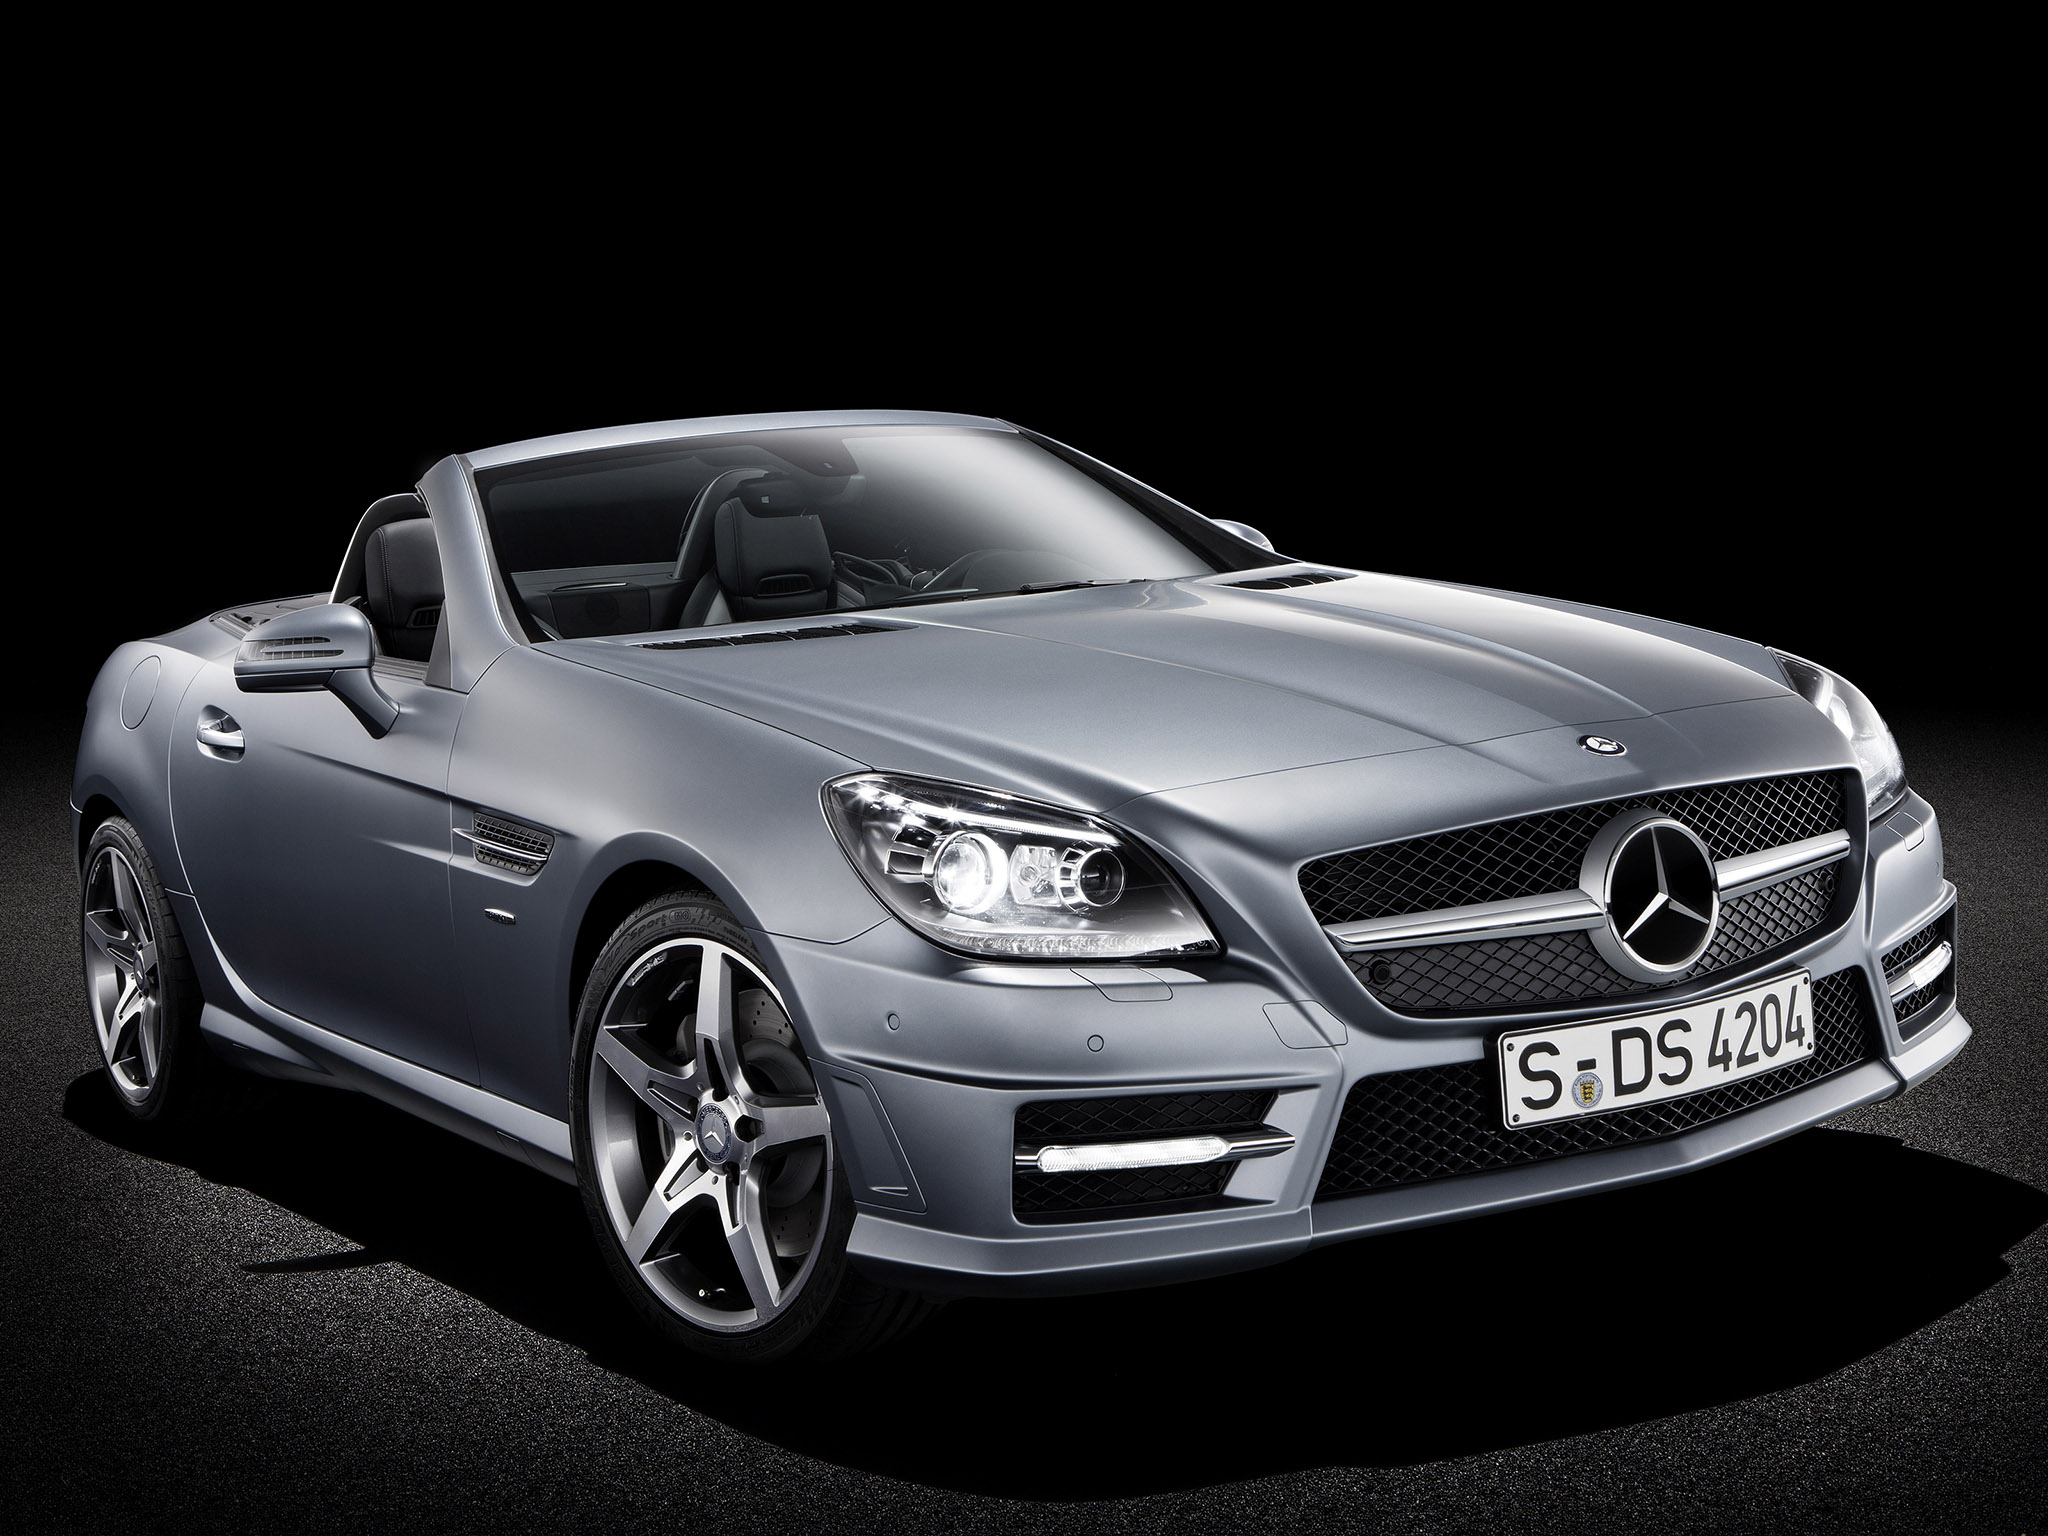 mercedes slk klasse 350 amg sports package r172 2011 mercedes slk klasse 350 amg sports package. Black Bedroom Furniture Sets. Home Design Ideas